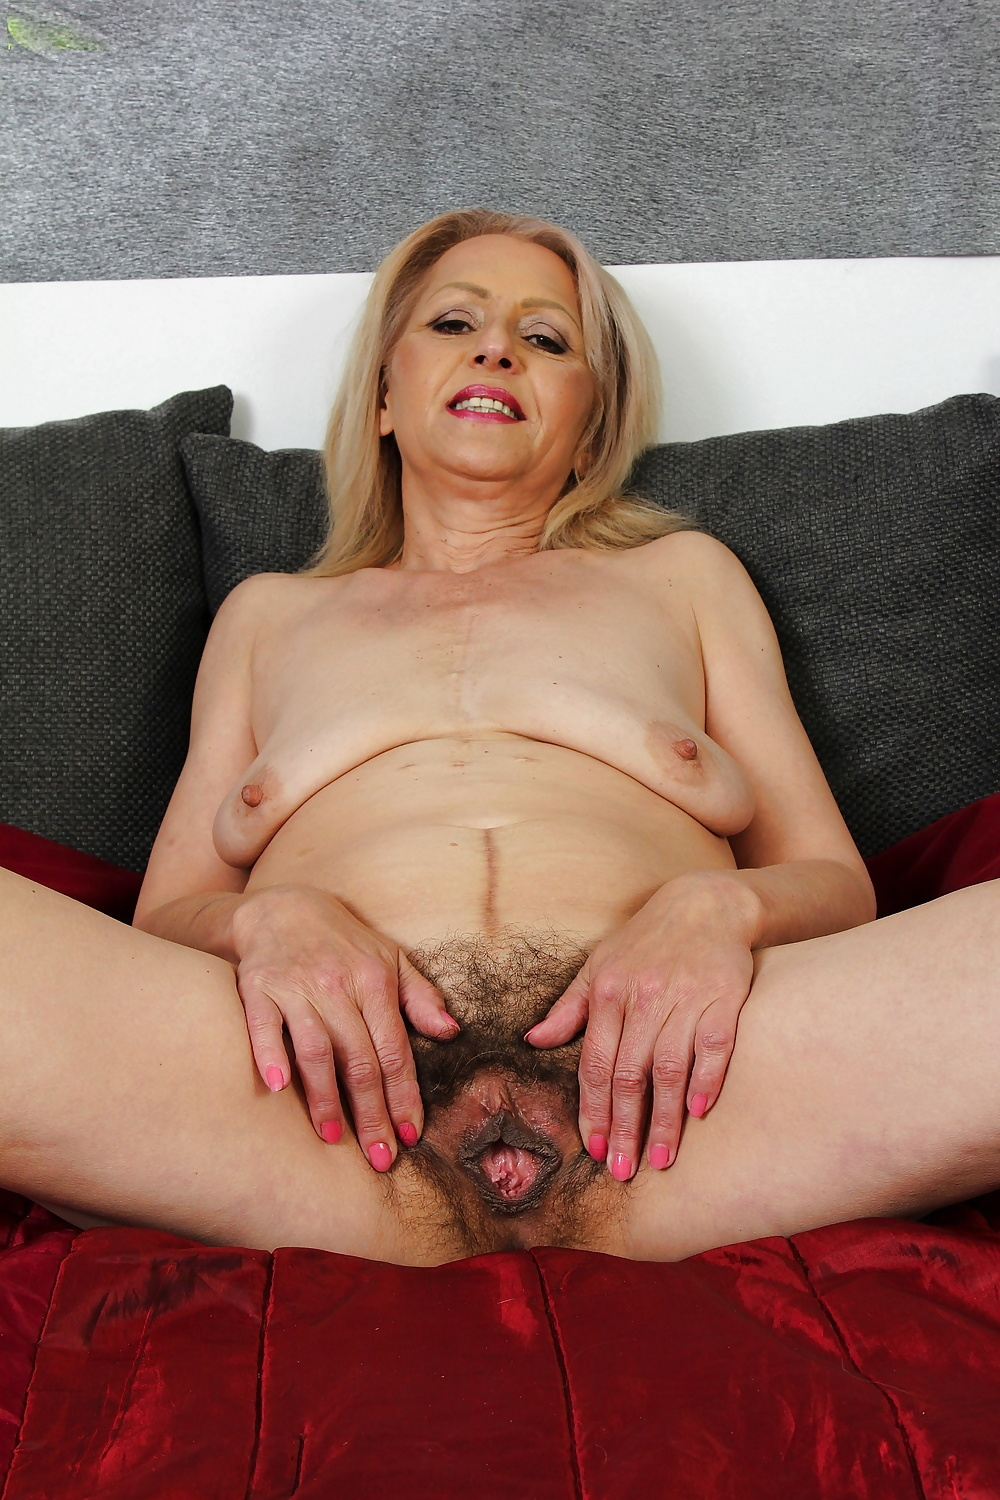 Mature pussy hunt, saggy mom sex gif